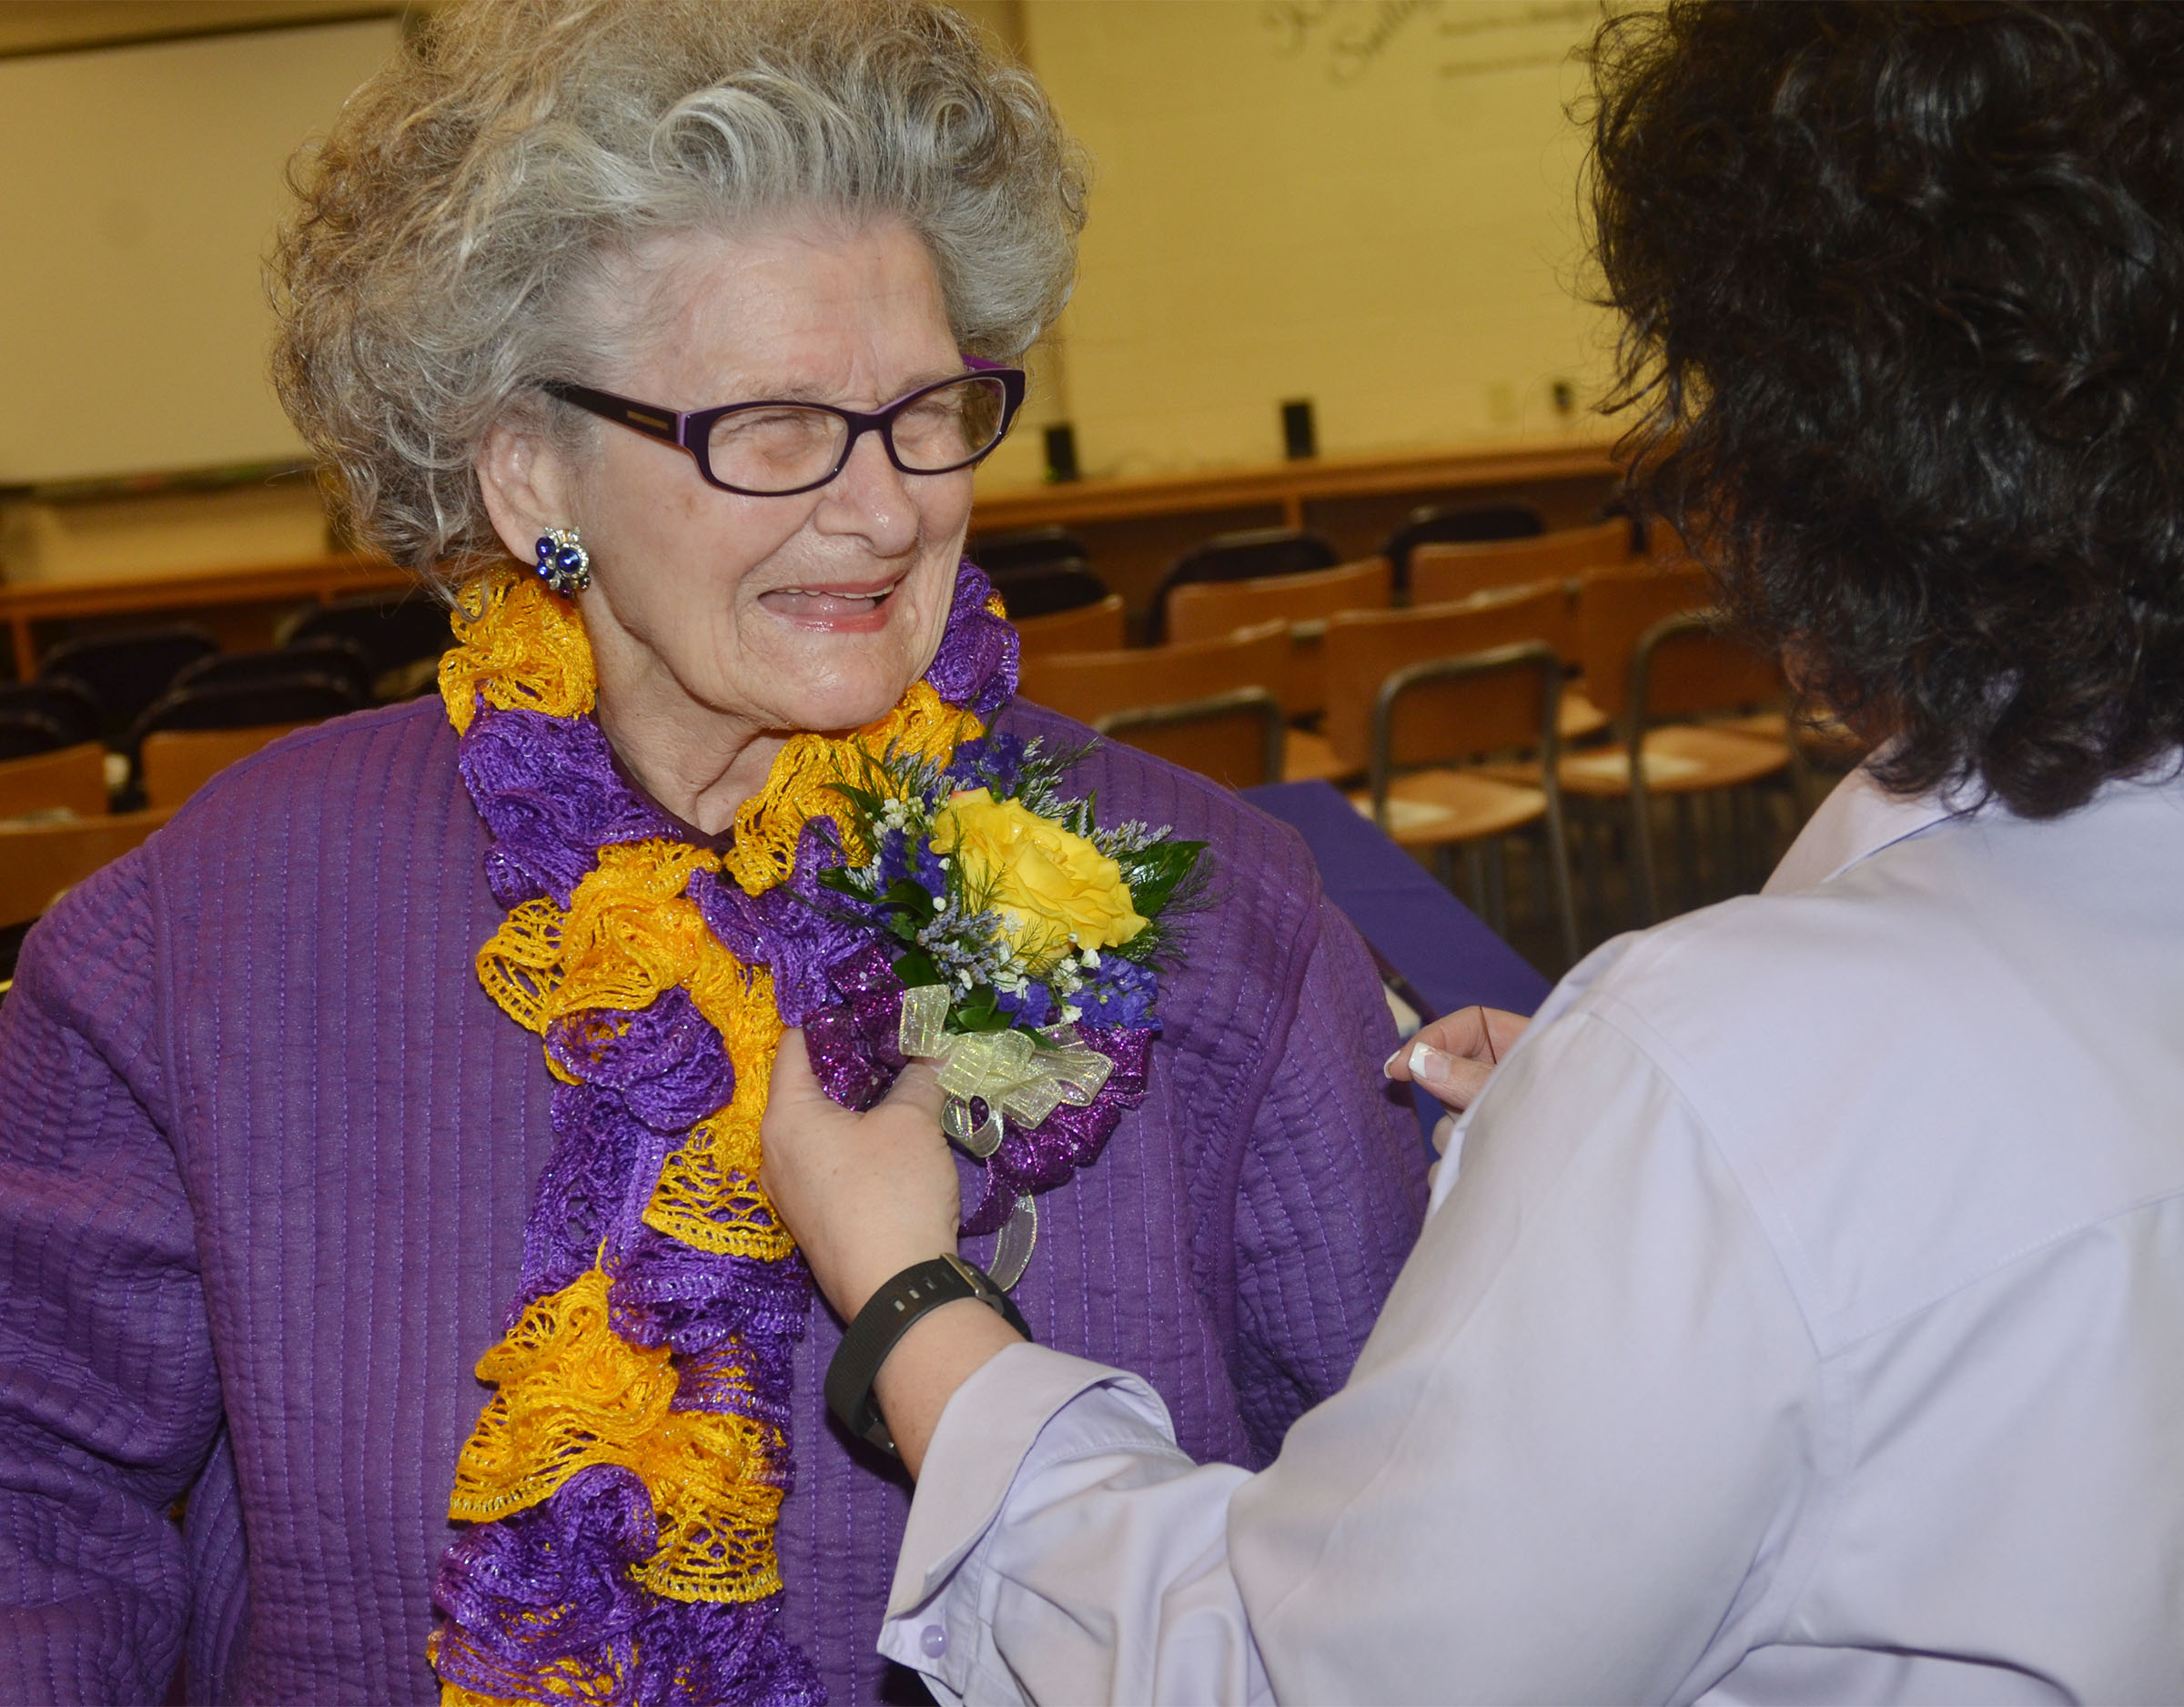 Former CHS employee Anne Fraim smiles as her corsage is pinned on her purple jacket.